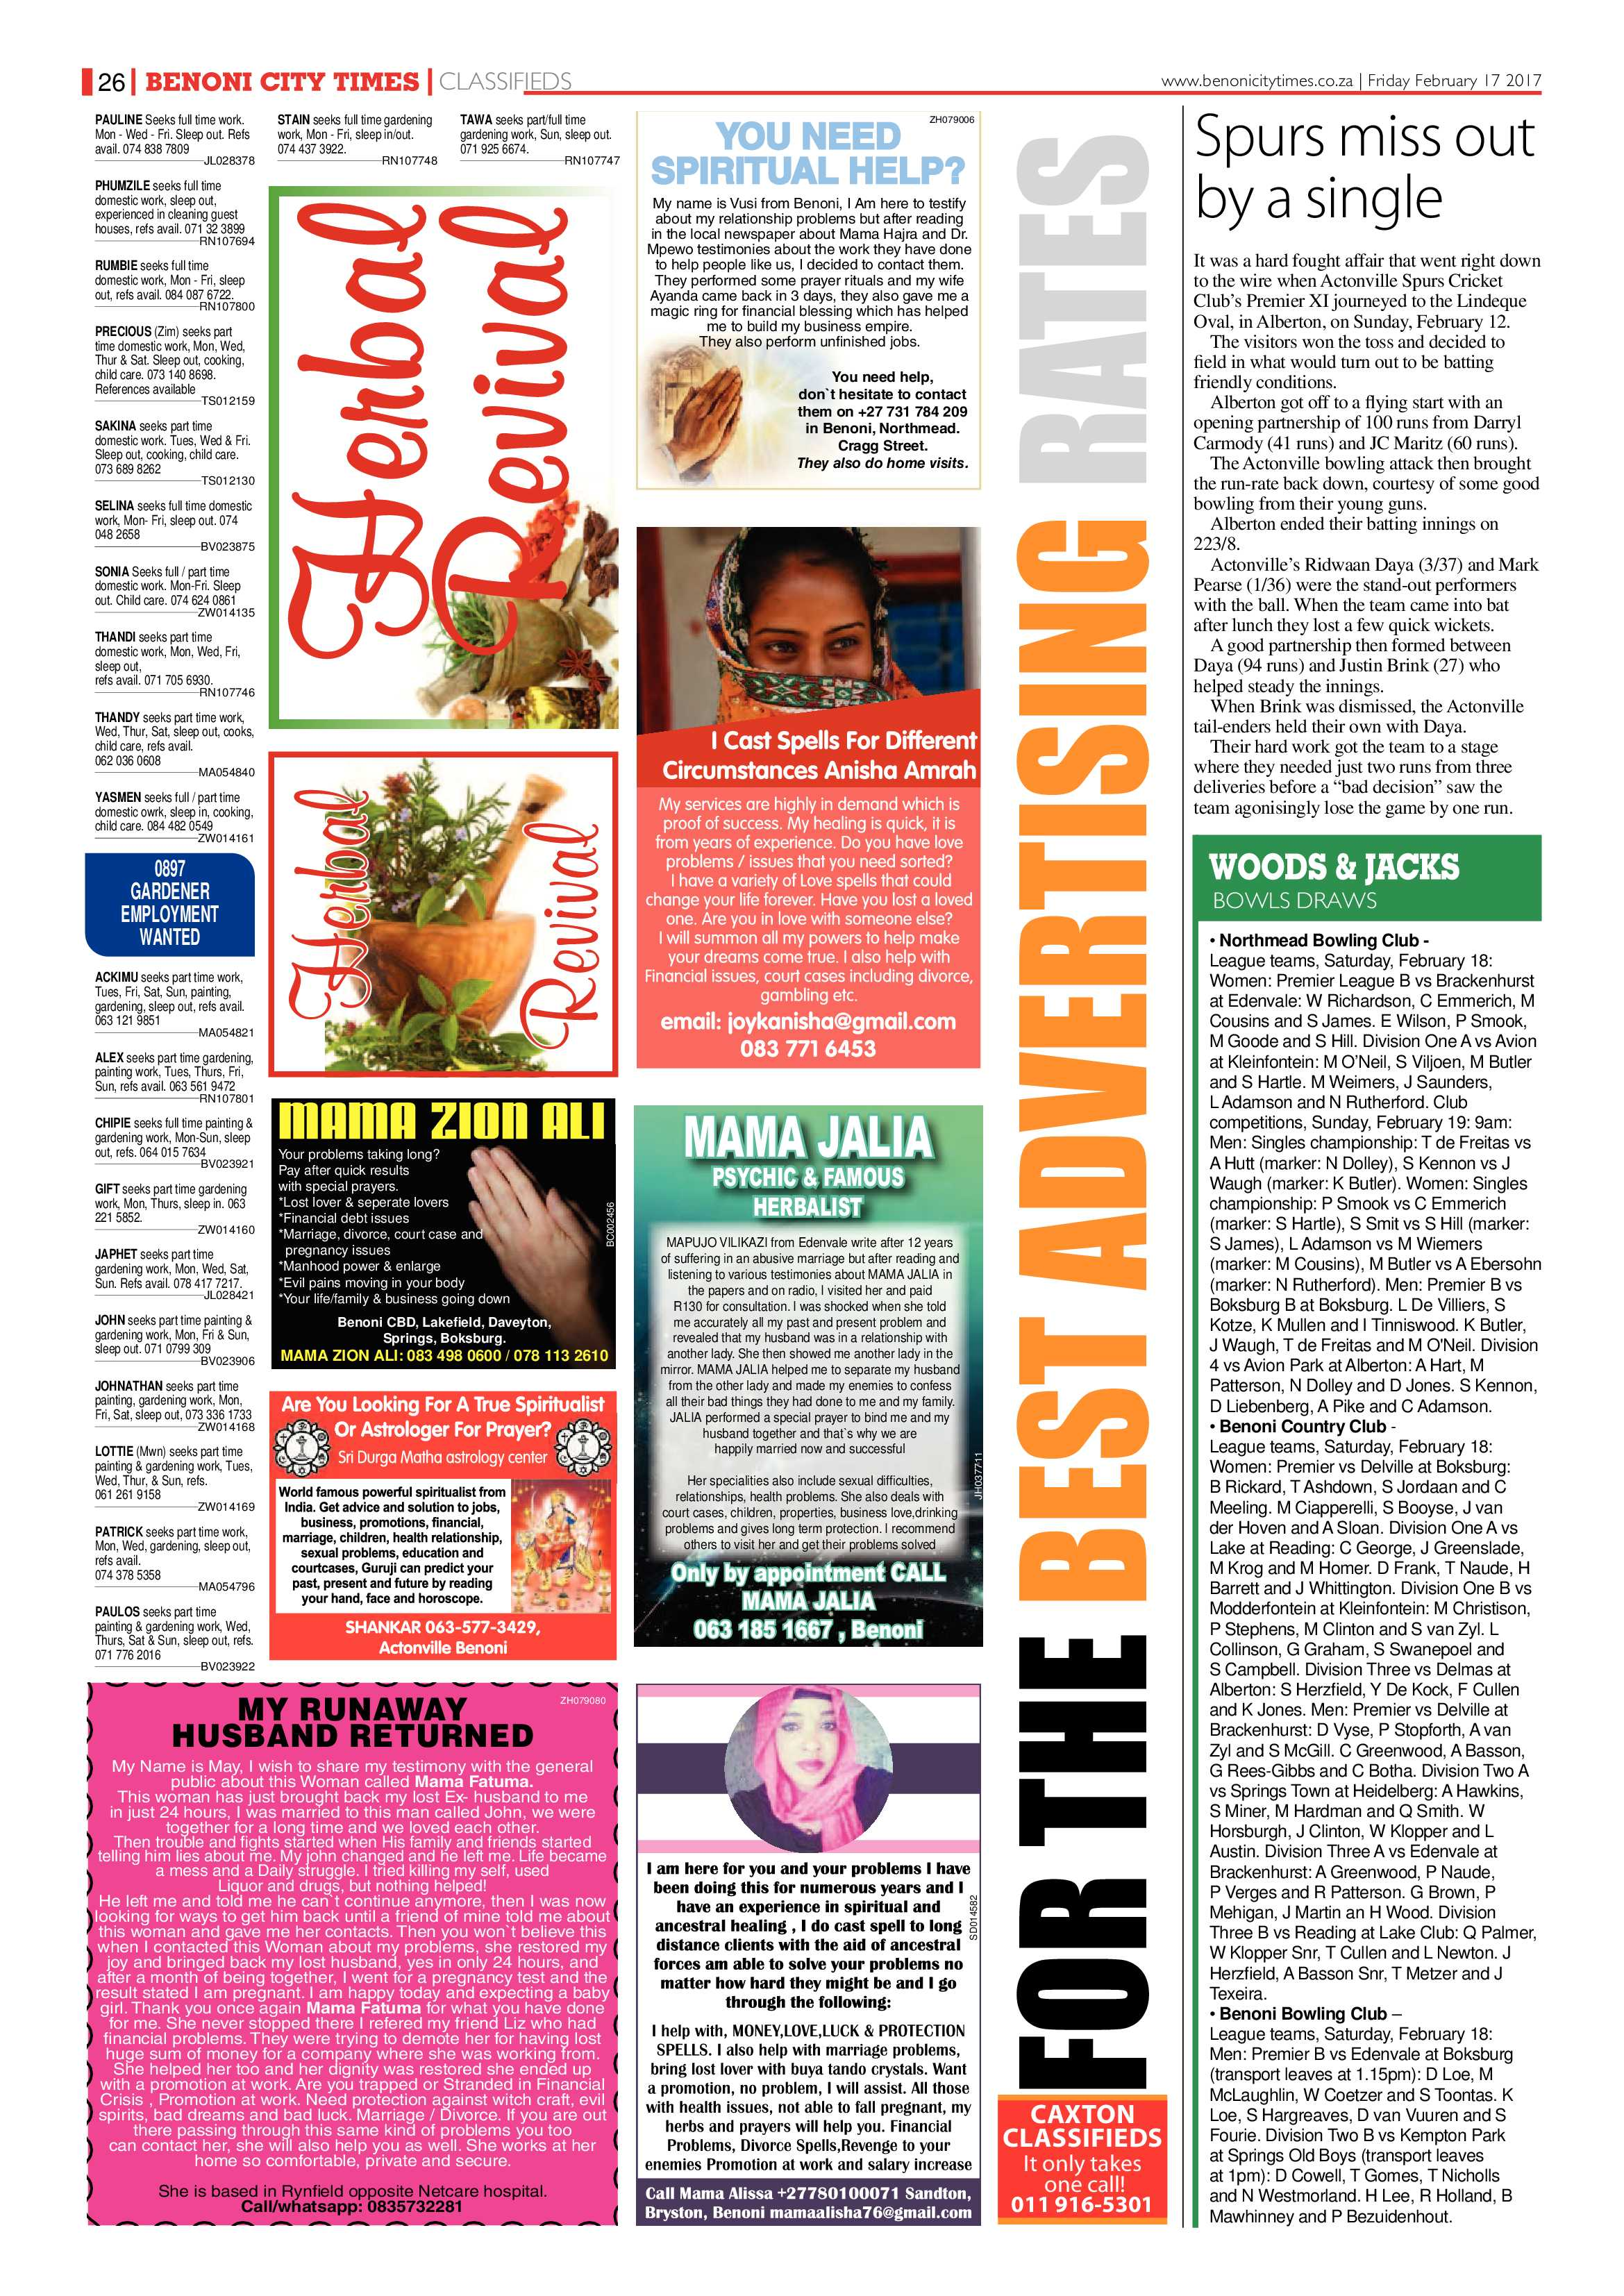 benoni-city-times-16-february-2017-epapers-page-26